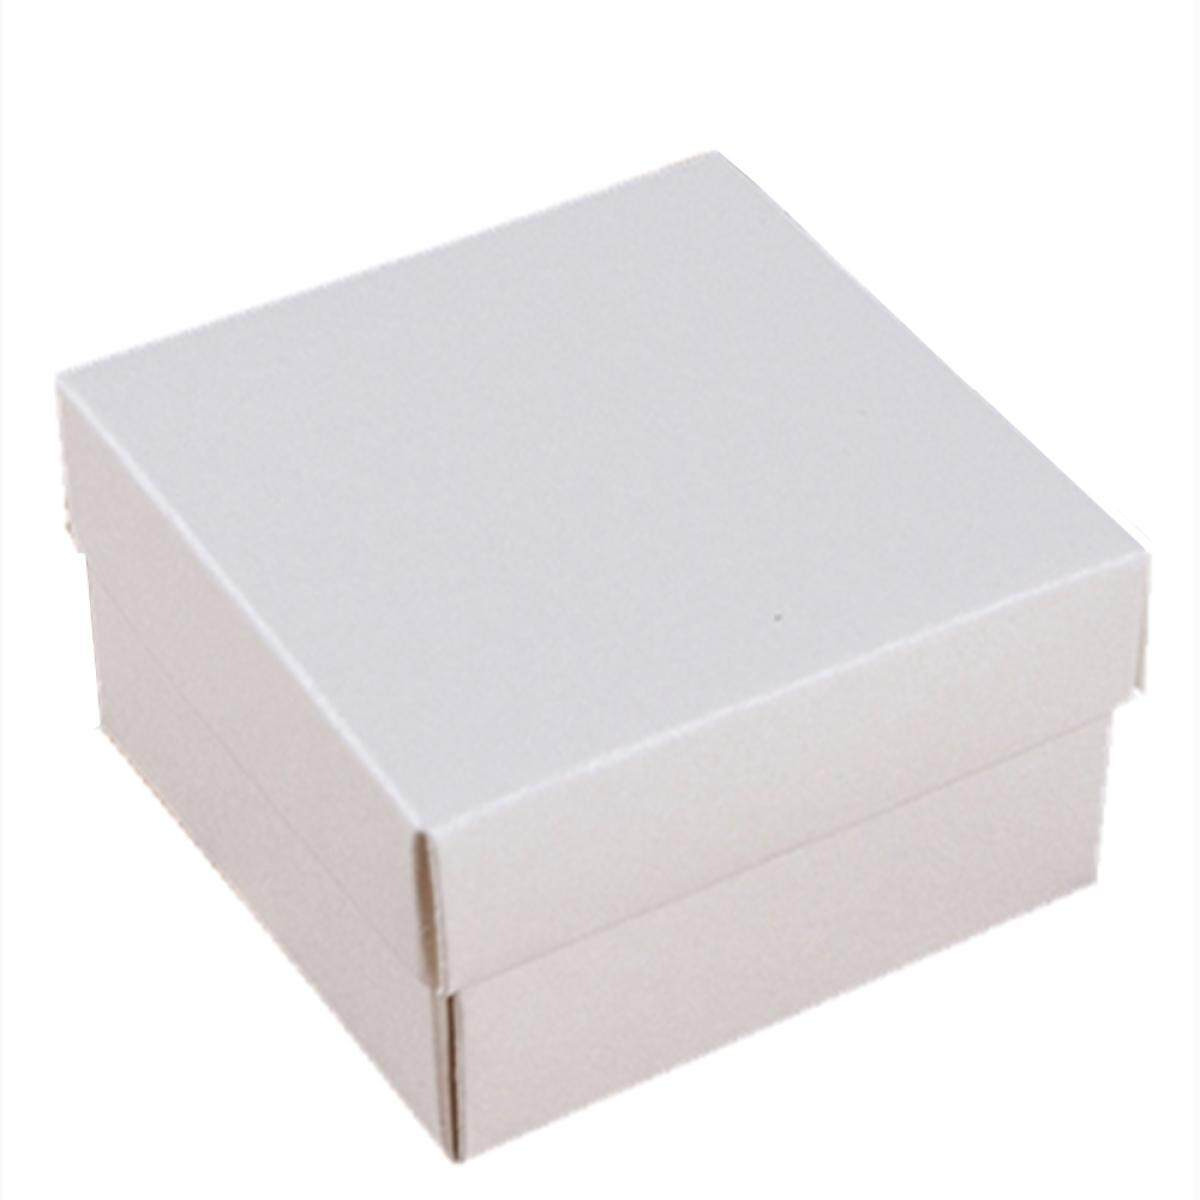 25Pcs Paper Ring Earring Jewelry Display Square Gift Boxes Case White